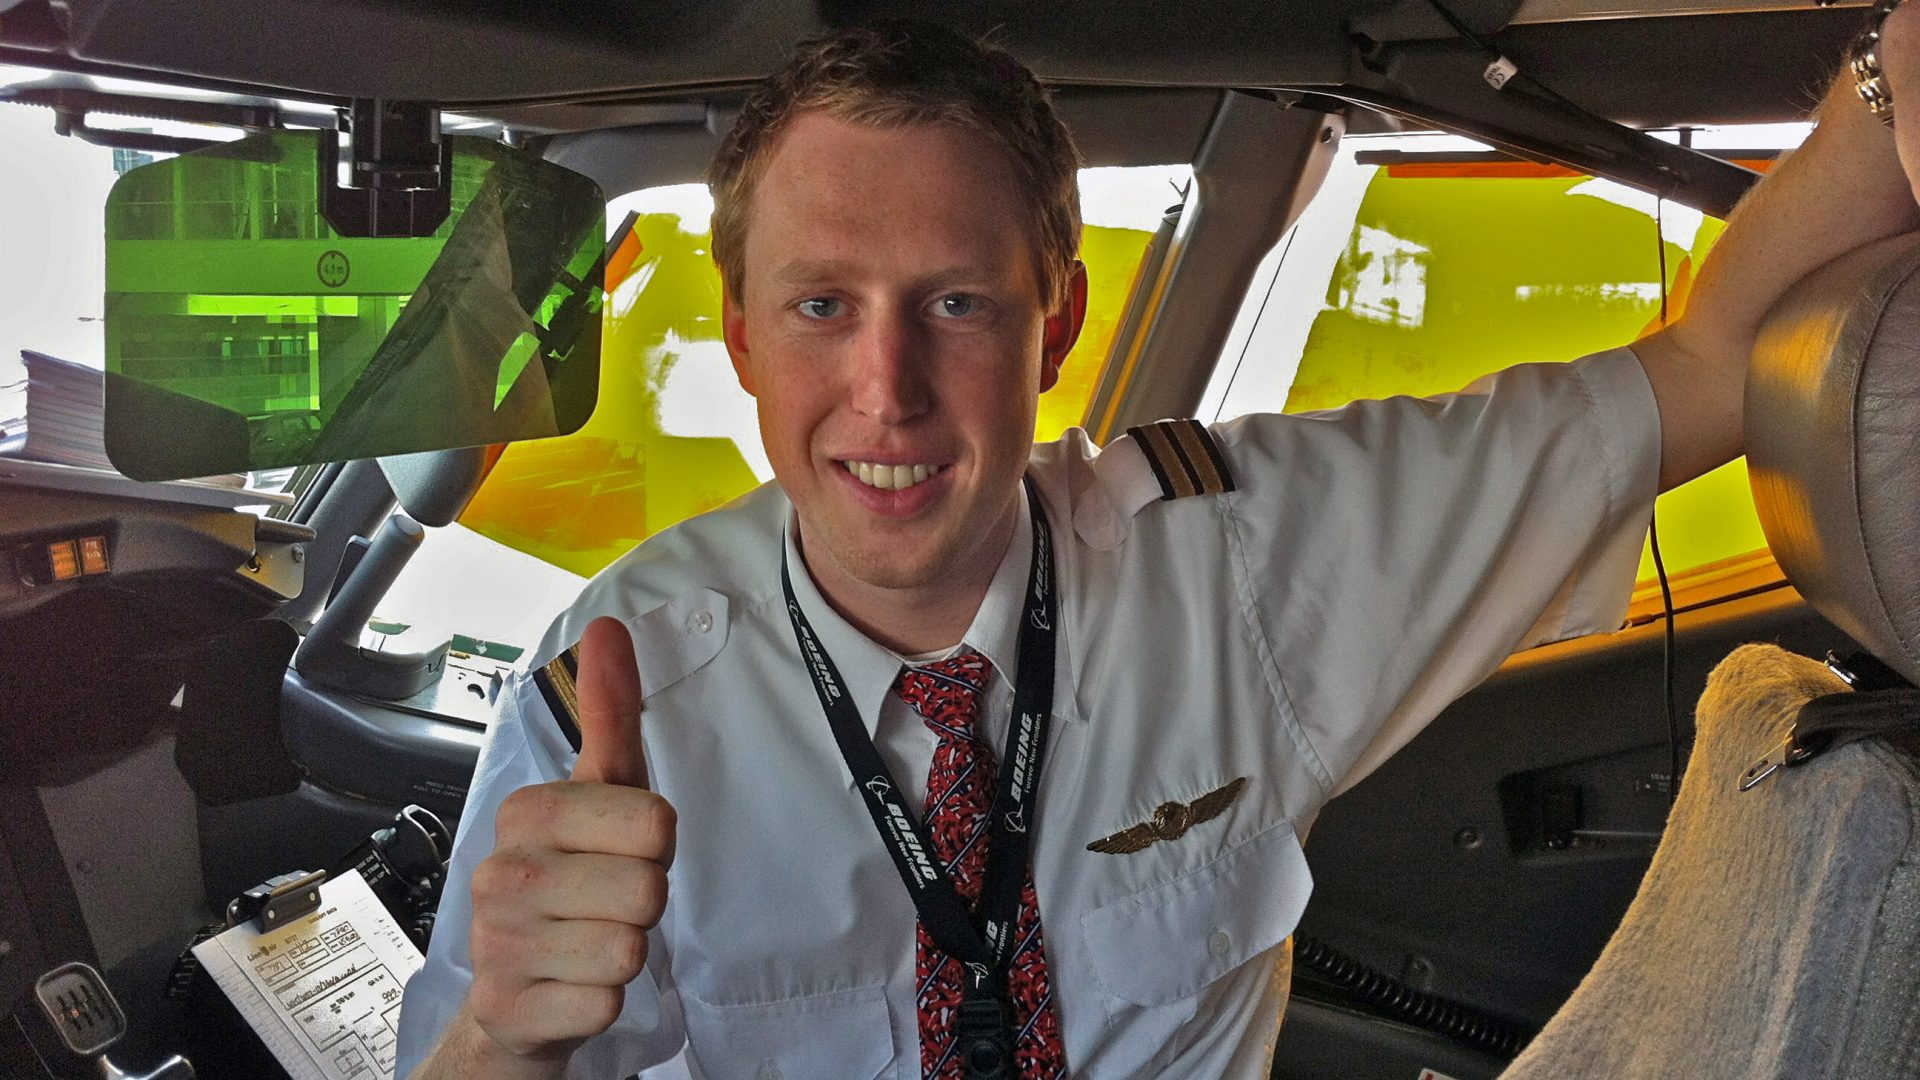 Pilot Mats Rove giving thumbs up from the cockpit